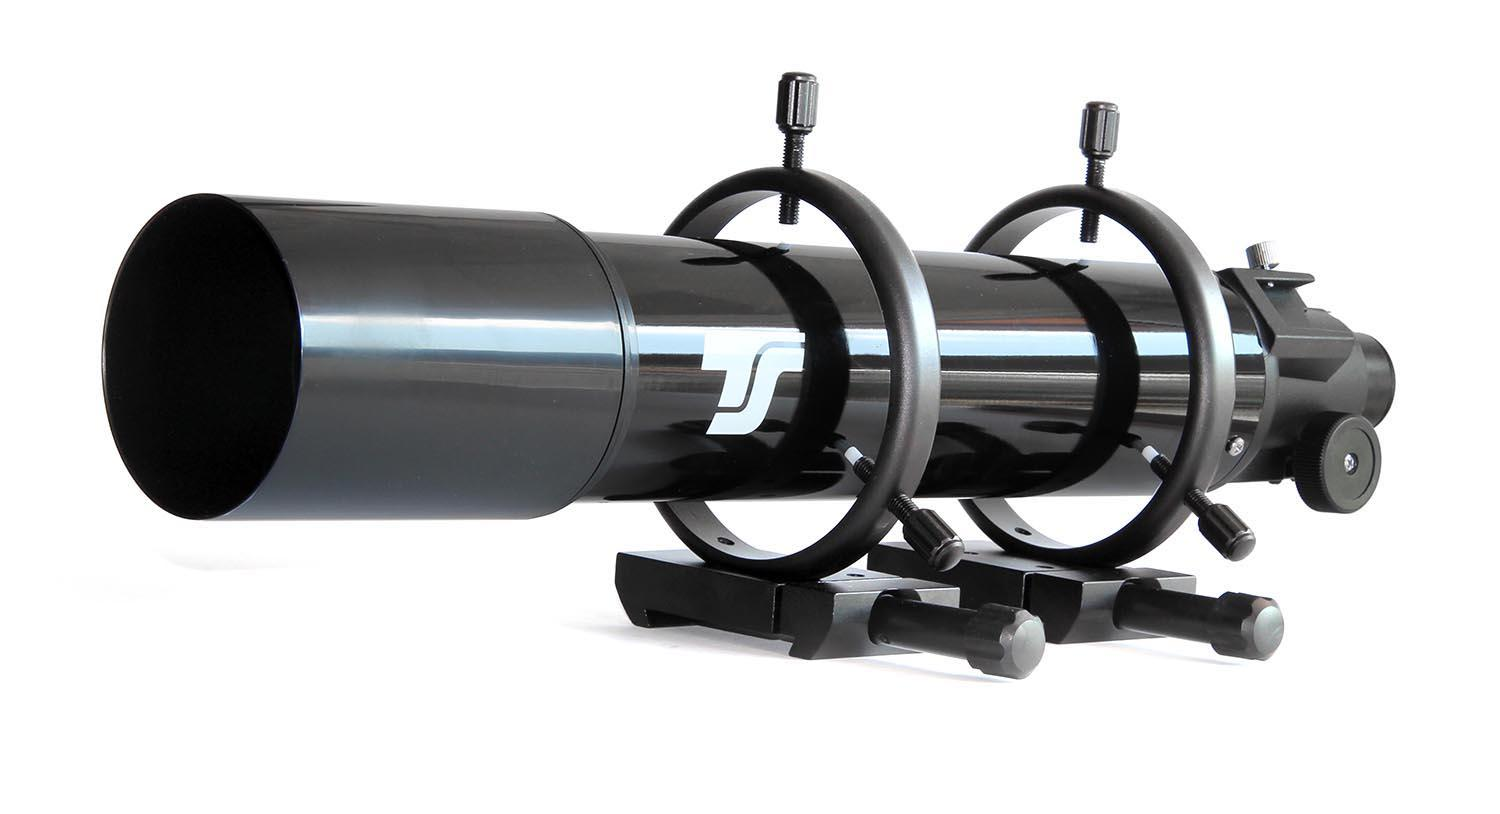 TS 80mm Guide Scope with 600mm Focal Length with Guide Scope Rings